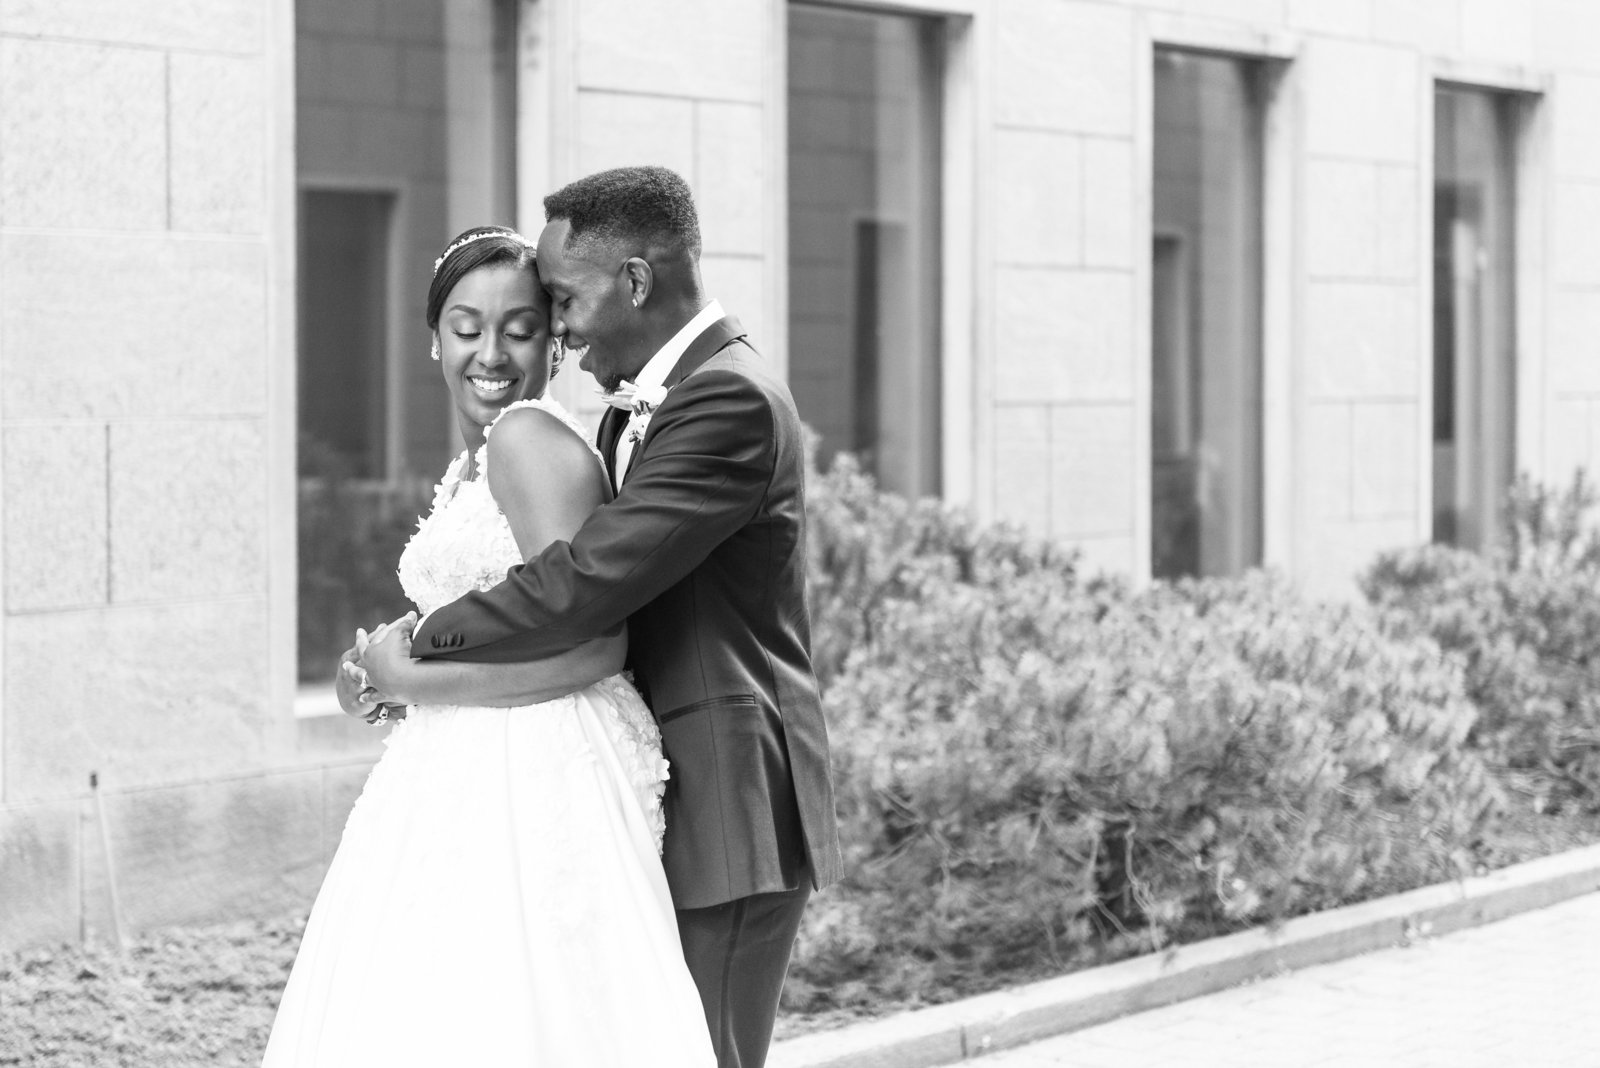 Samantha-Akeem-Wedding-170007